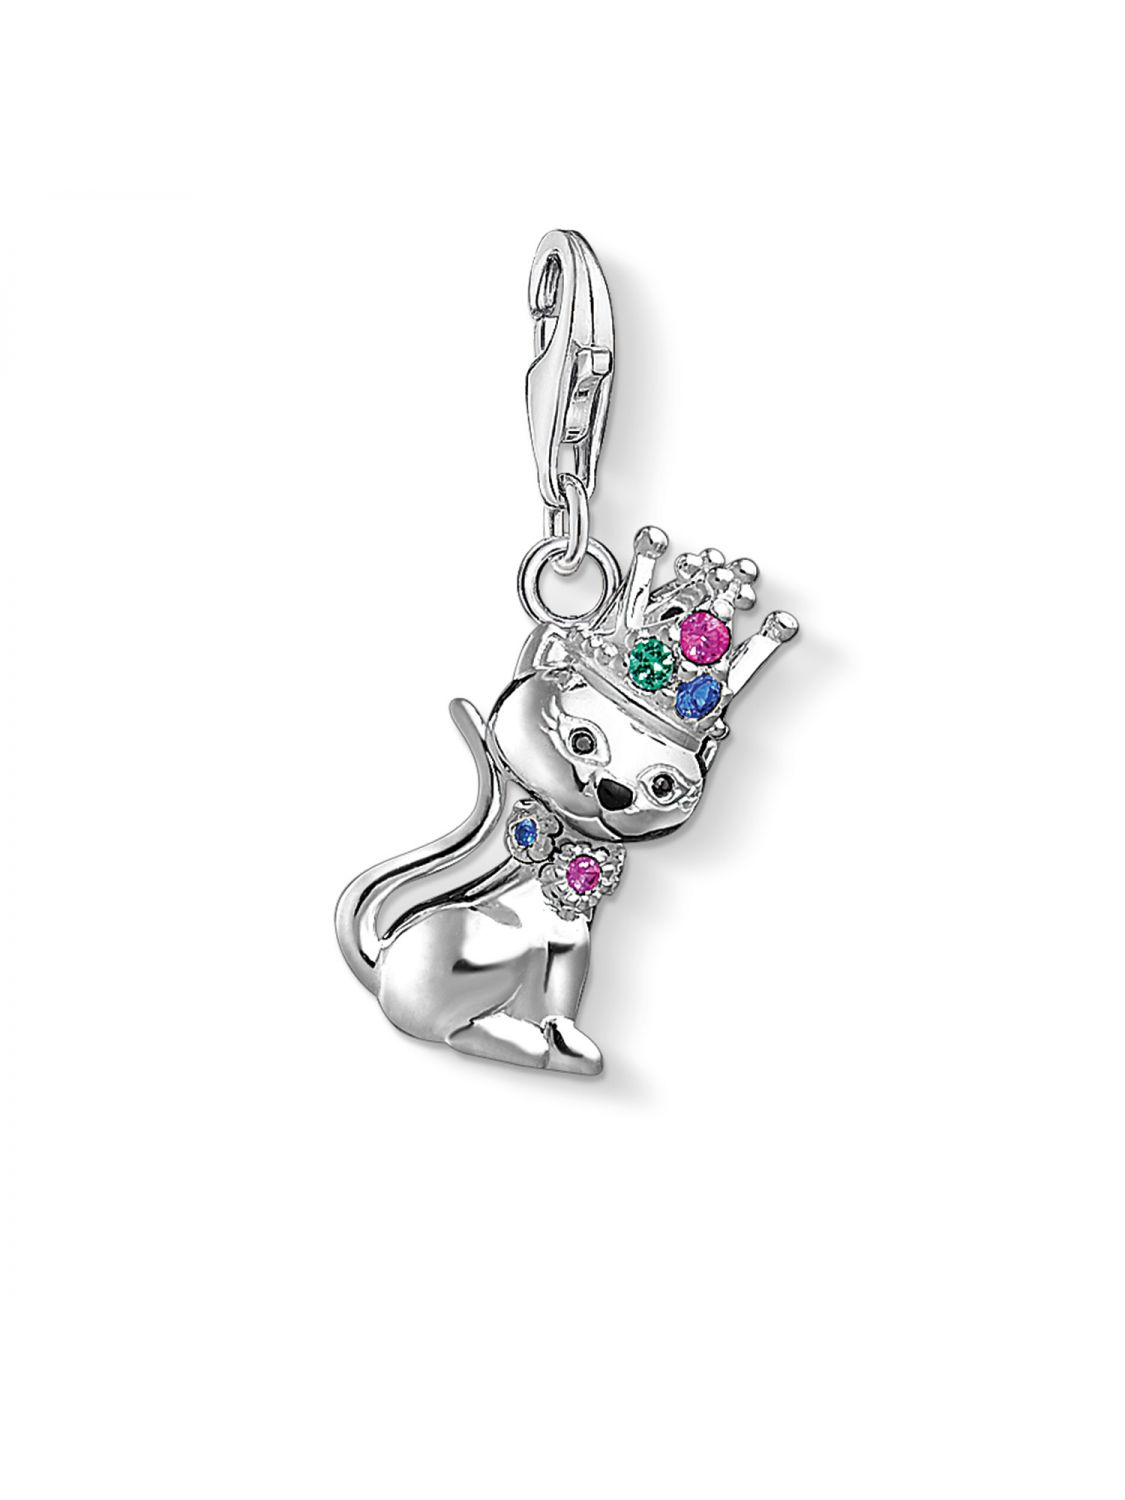 Thomas Sabo Charm pendant Cat with crown multicoloured 1486-338-7 Thomas Sabo sEcfhgjKl